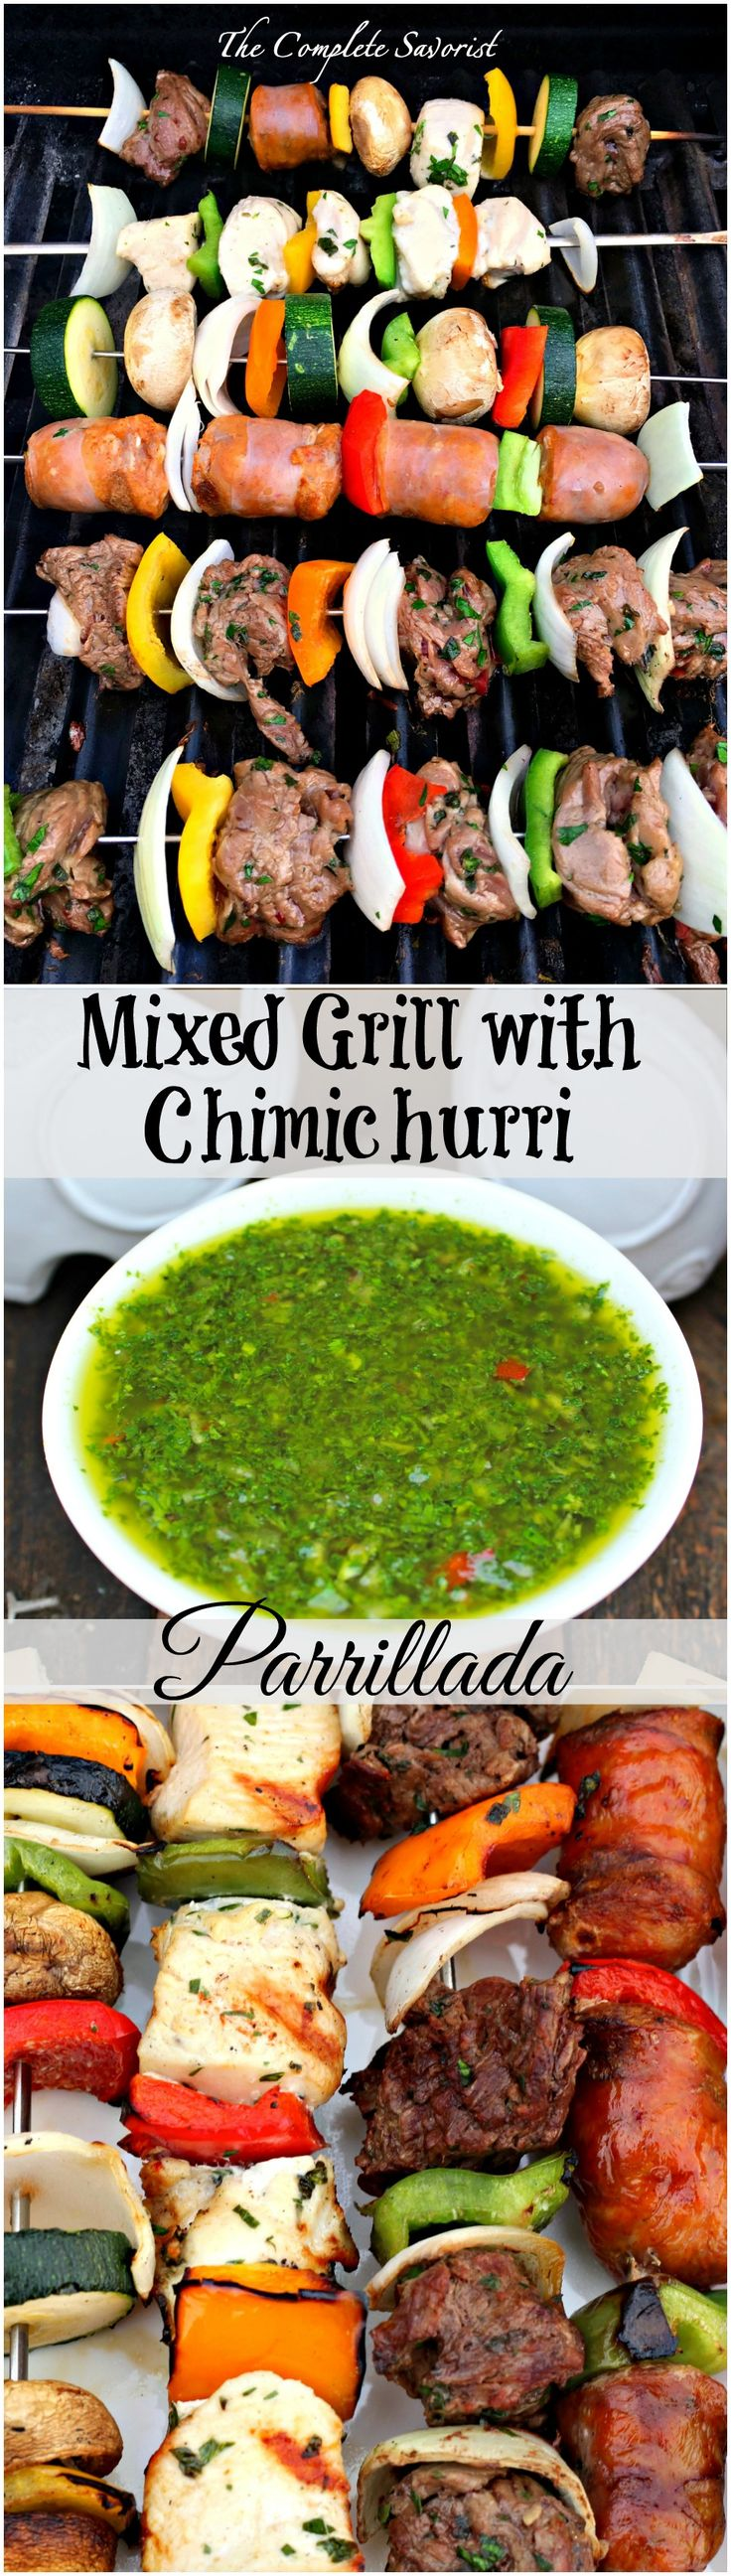 Msg 4 21+ Mixed Grill with Chimichurri Parrillada ~ Latin-inspired grilled skewers of steak, chicken, sausage and vegetables with fresh chimichurri ~ The Complete Savorist #SummerVino #VeranoSutter ad